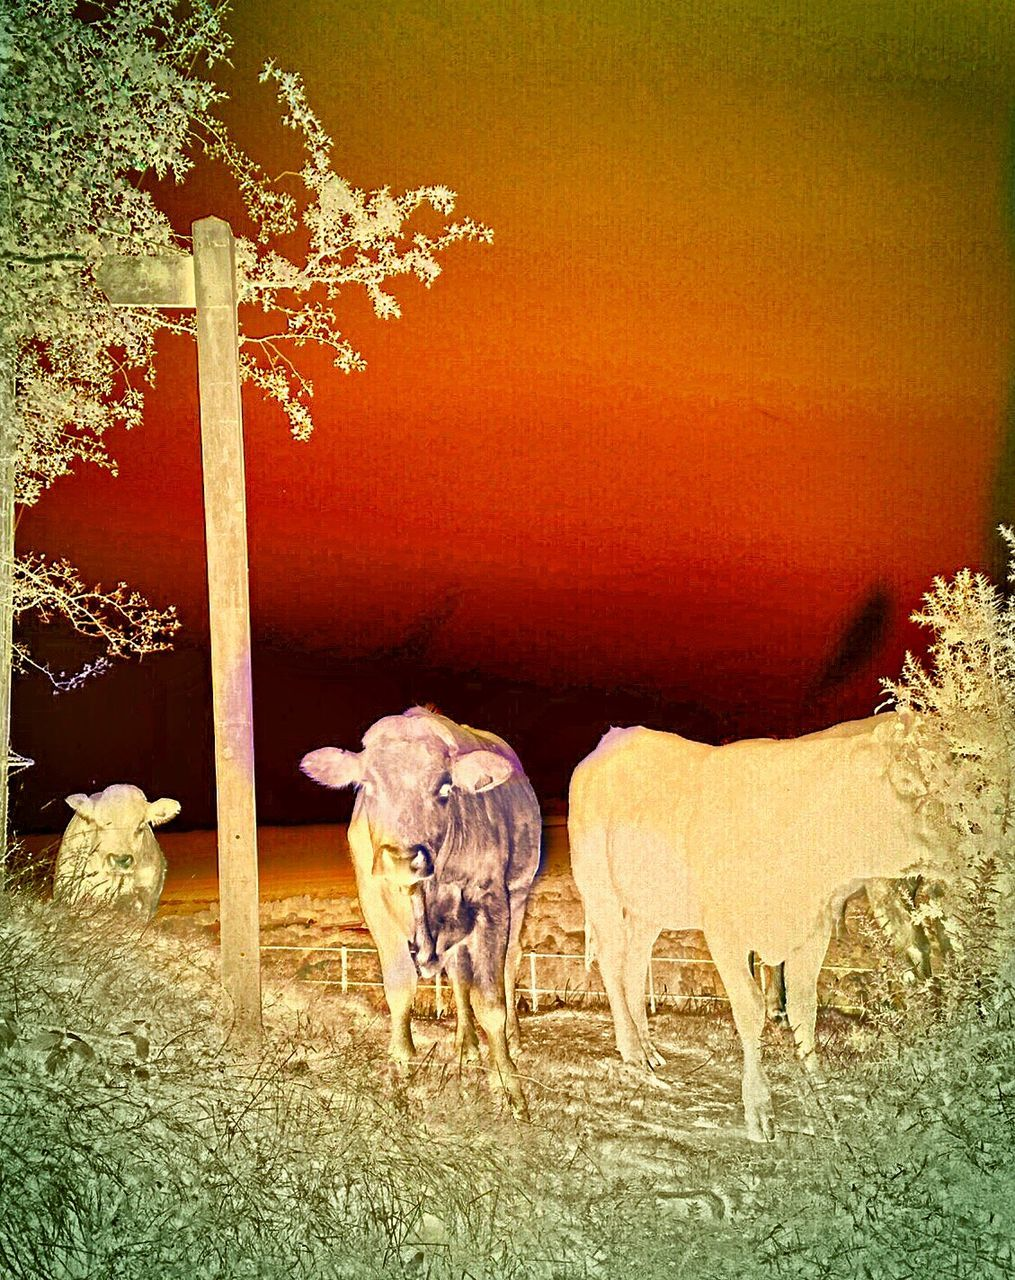 mammal, animal themes, domestic animals, nature, livestock, field, no people, cow, grass, outdoors, tree, day, beauty in nature